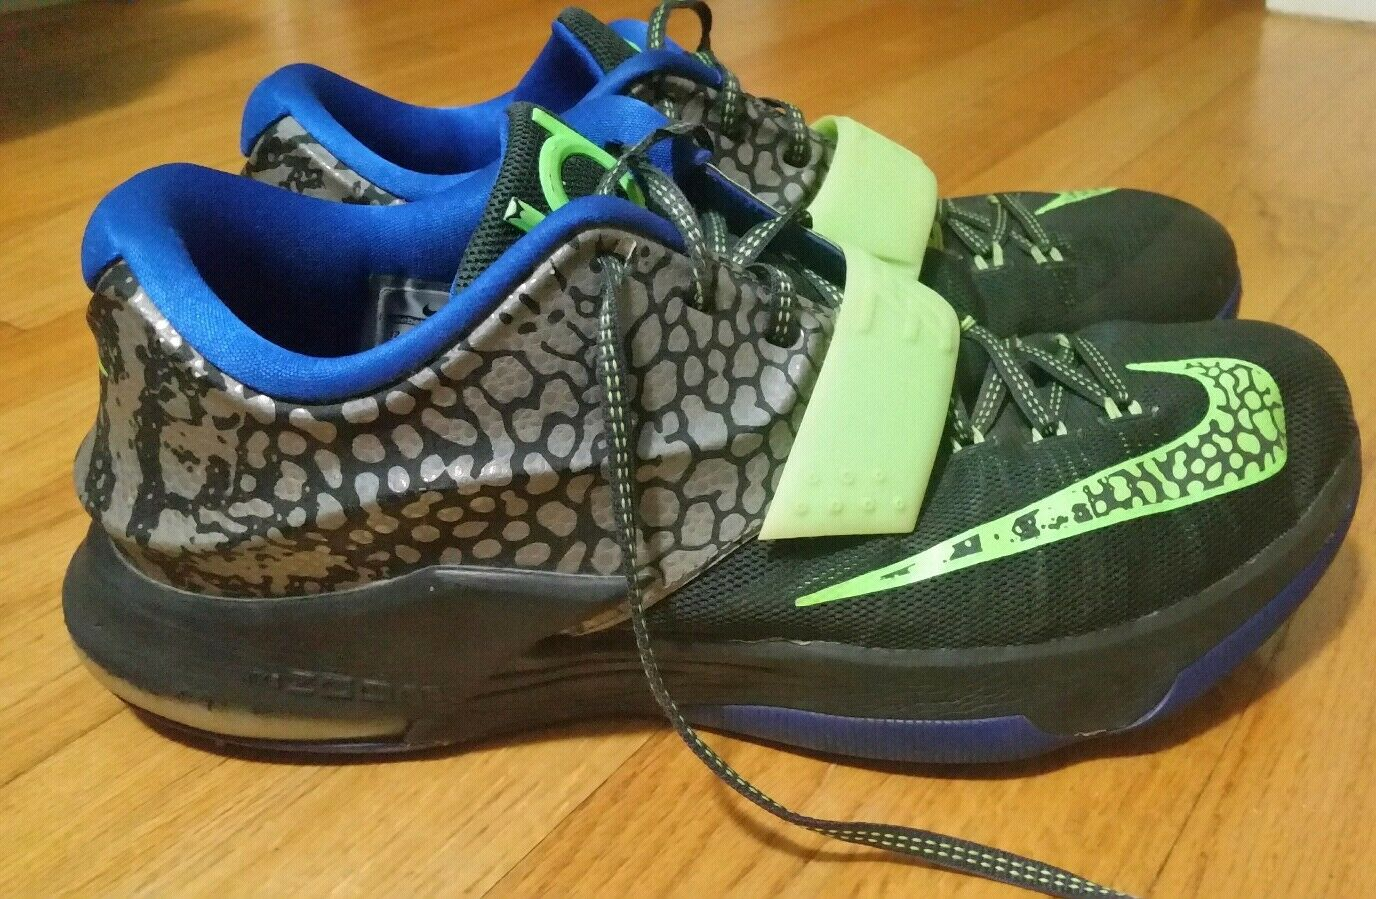 Nike KD 7 VII Electric Eel Metallic Kevin Durant Pewter Flash Lime Men's Size 12